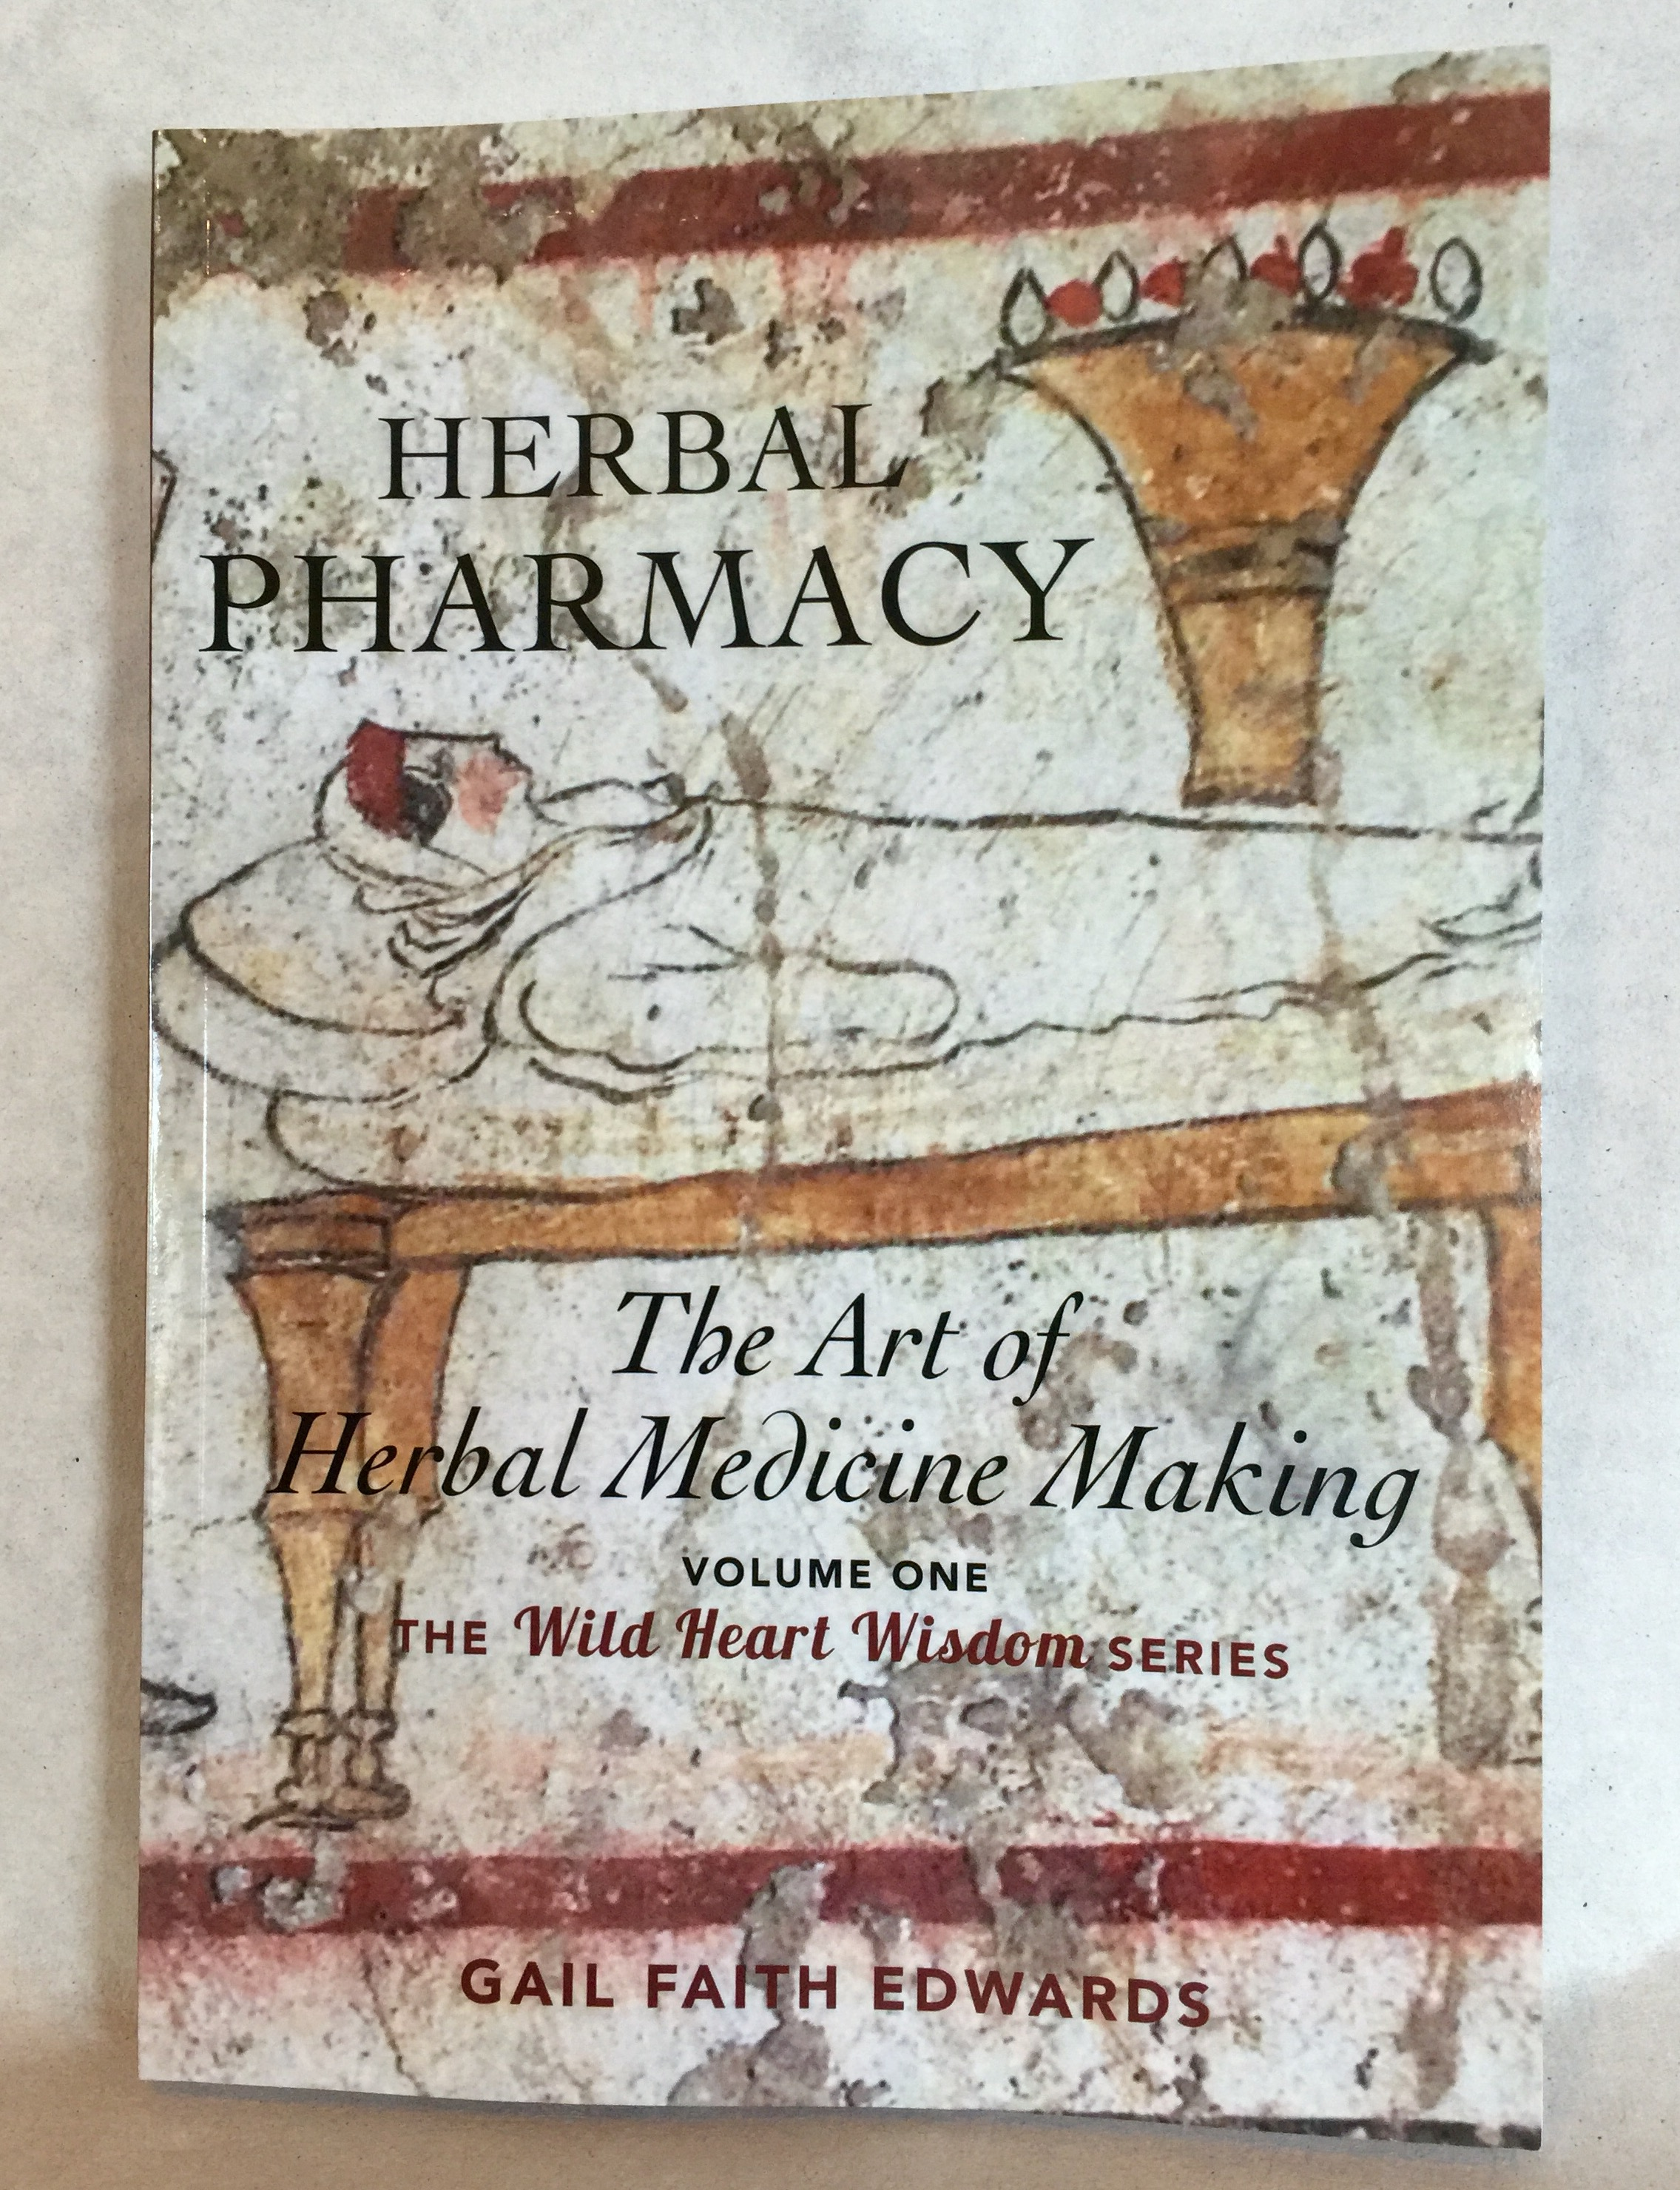 Herbal Pharmacy - the art of herbal medicine making